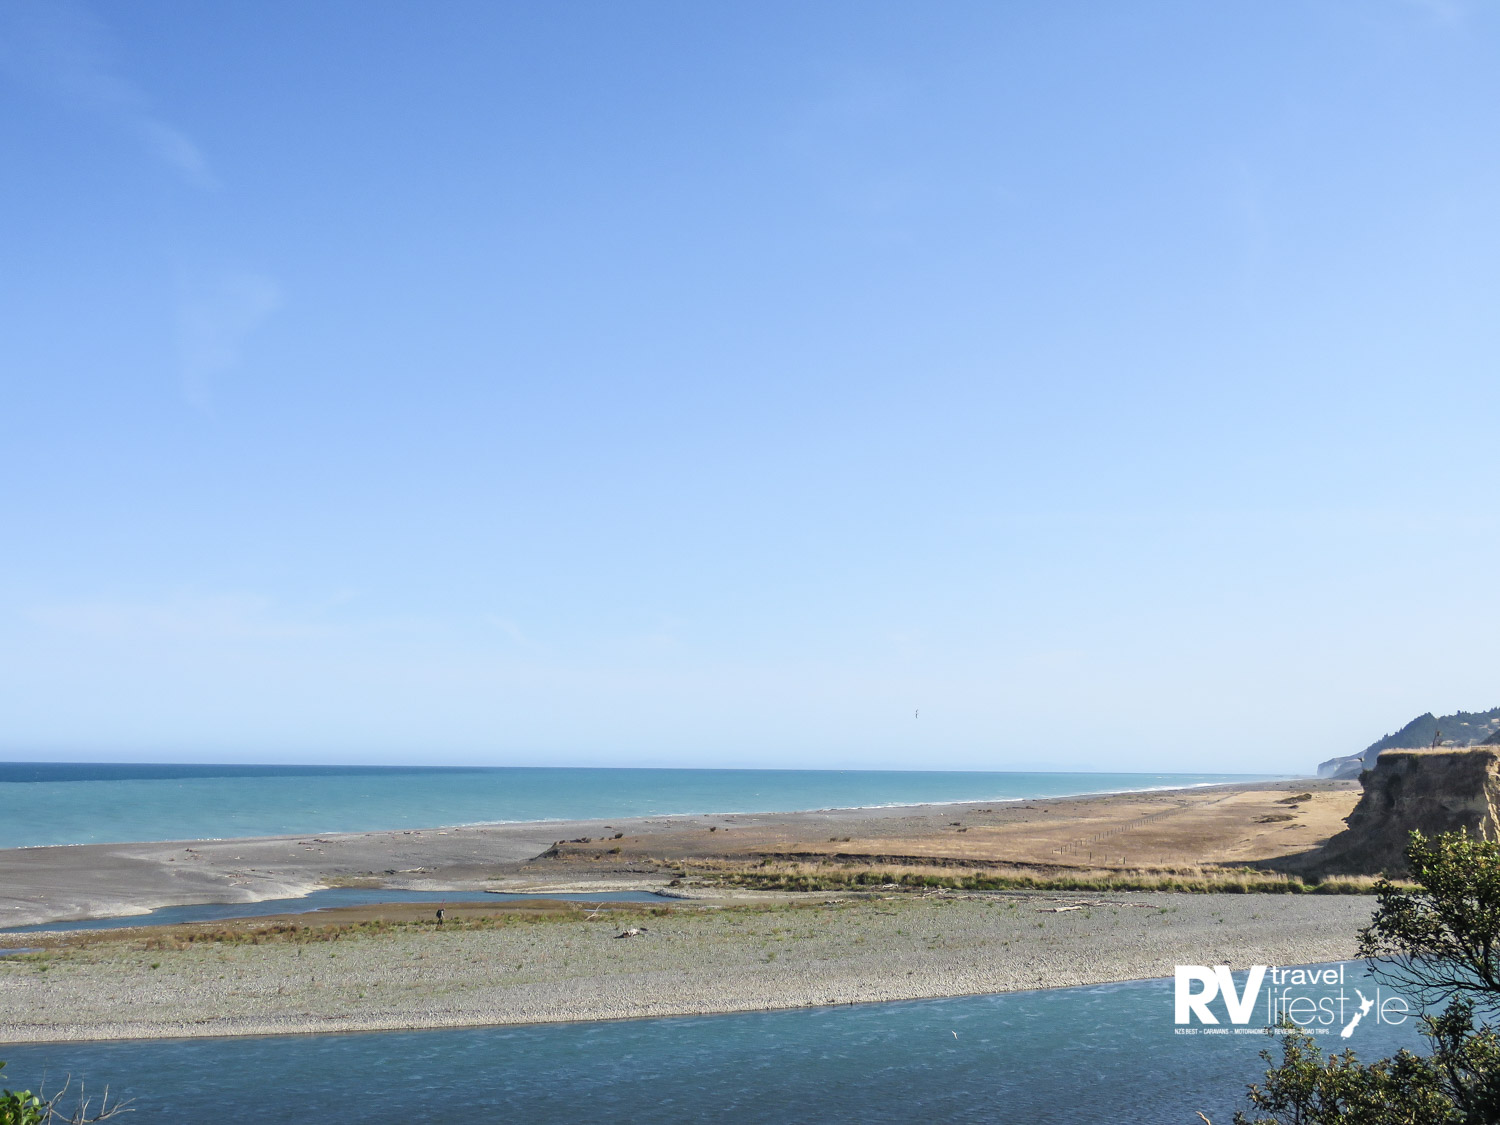 Hurunui River mouth – a great fishing spot!